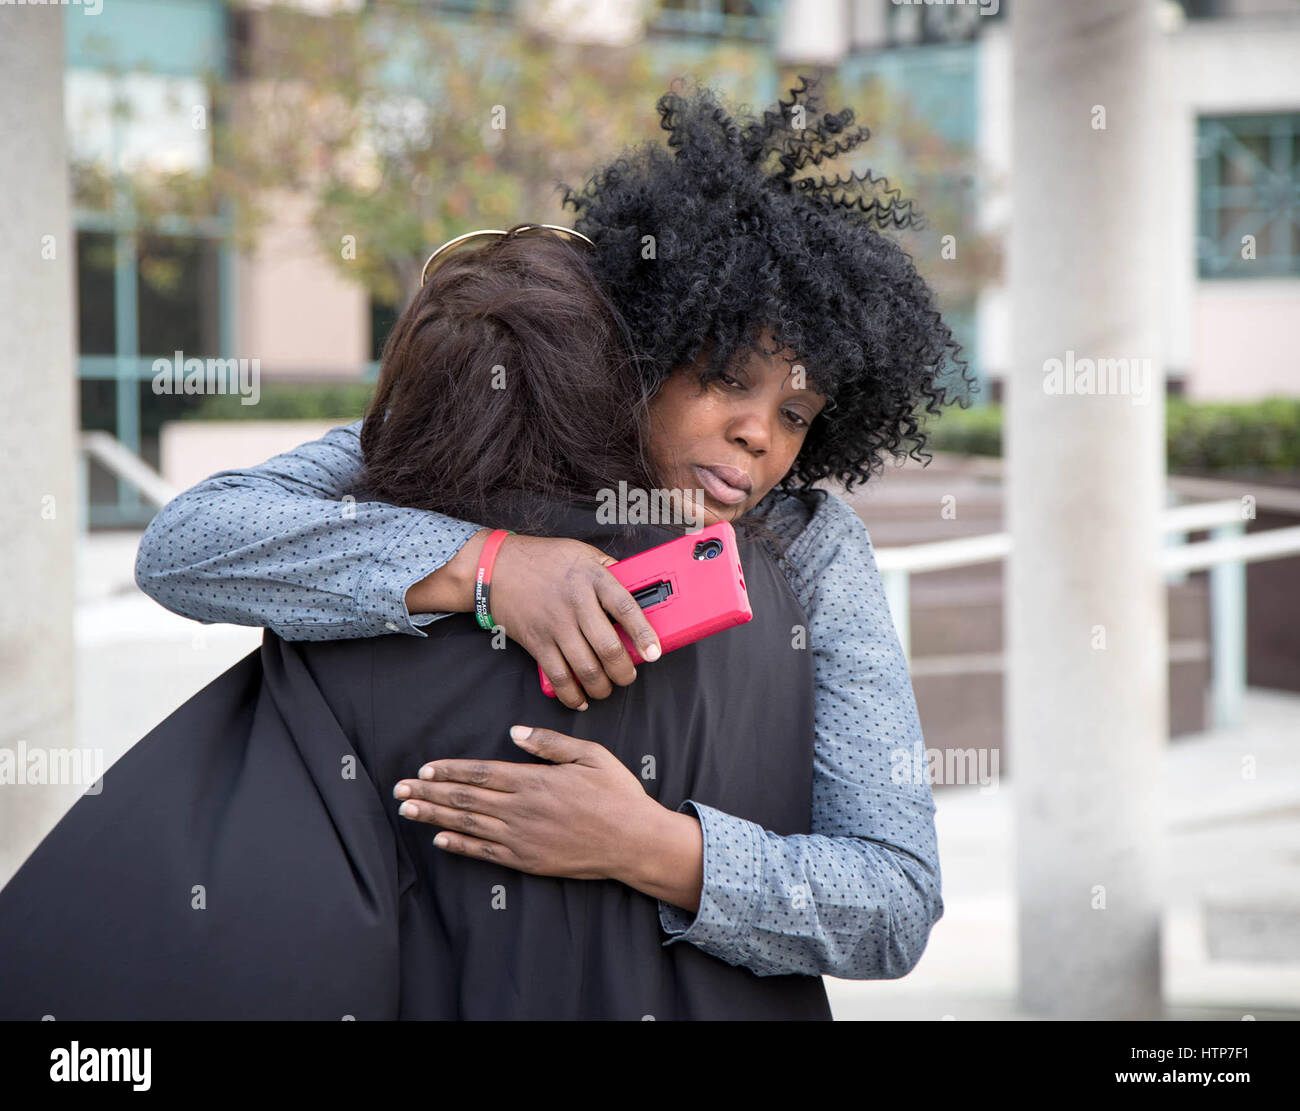 West Palm Beach, Florida, USA. 14th Mar, 2017. Felicia Mitchell, mother of Henry Bennett, III, hugs attorney Jasmine - Stock Image